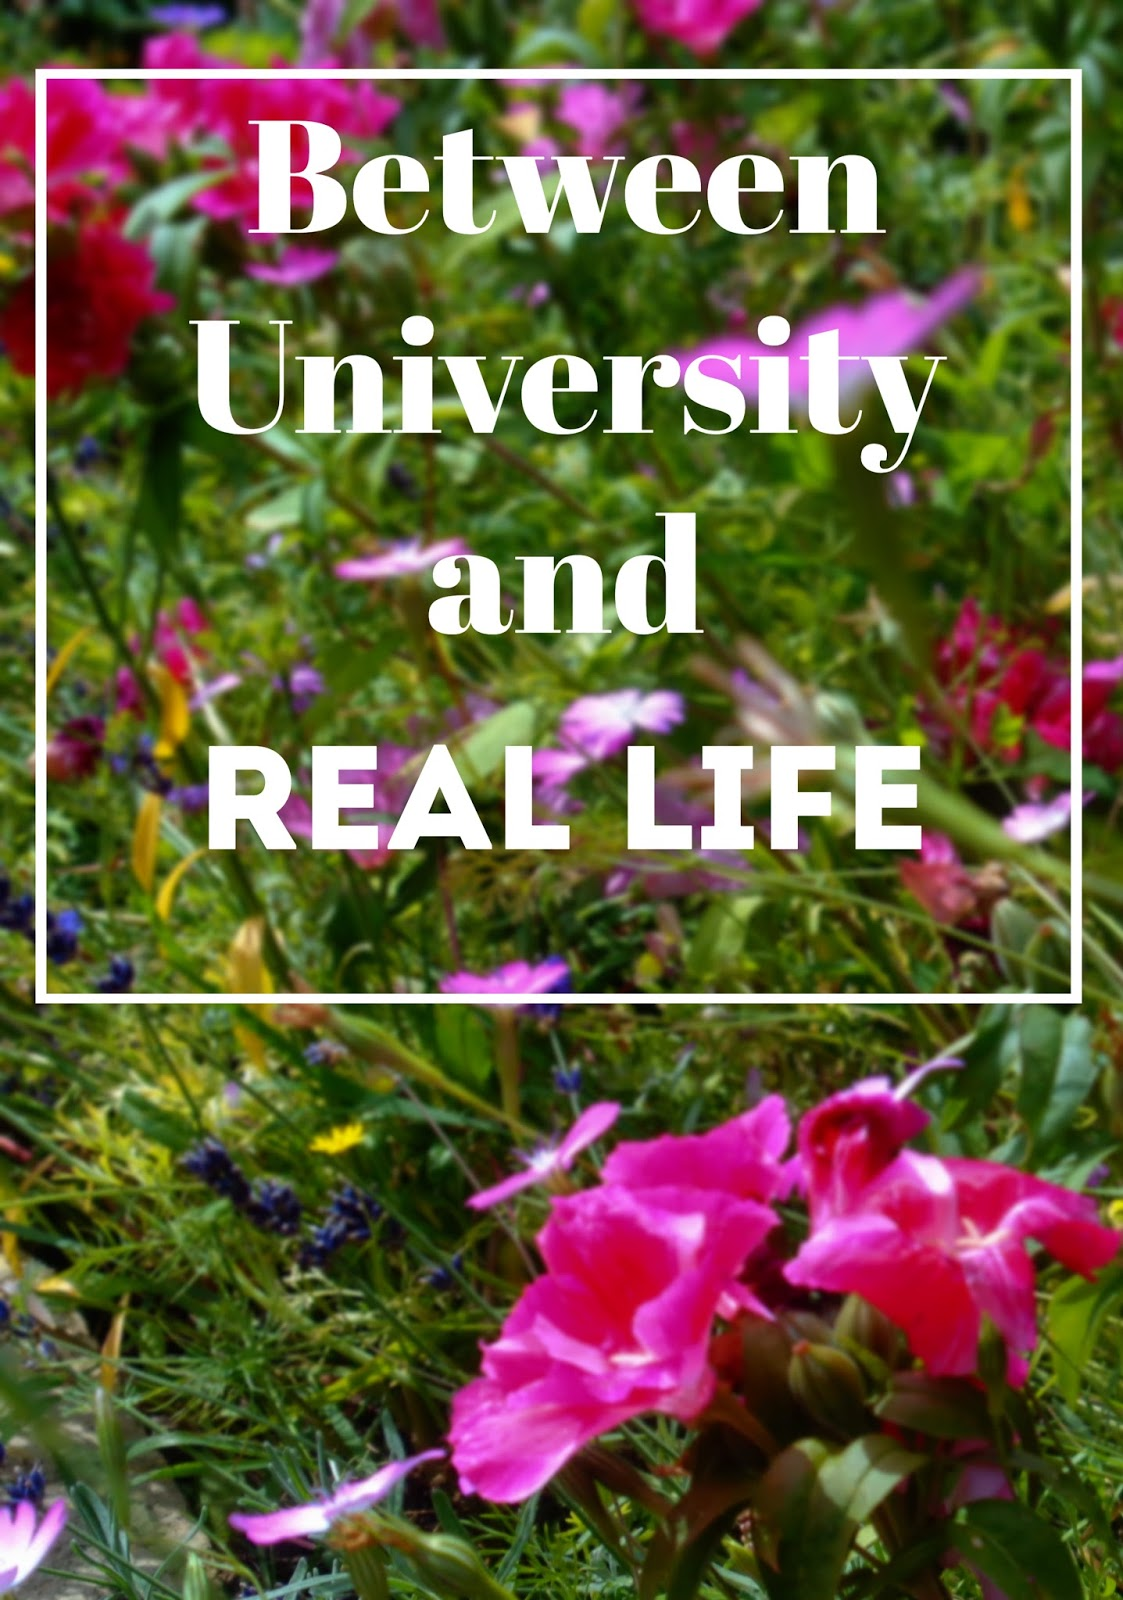 Between University and Real Life